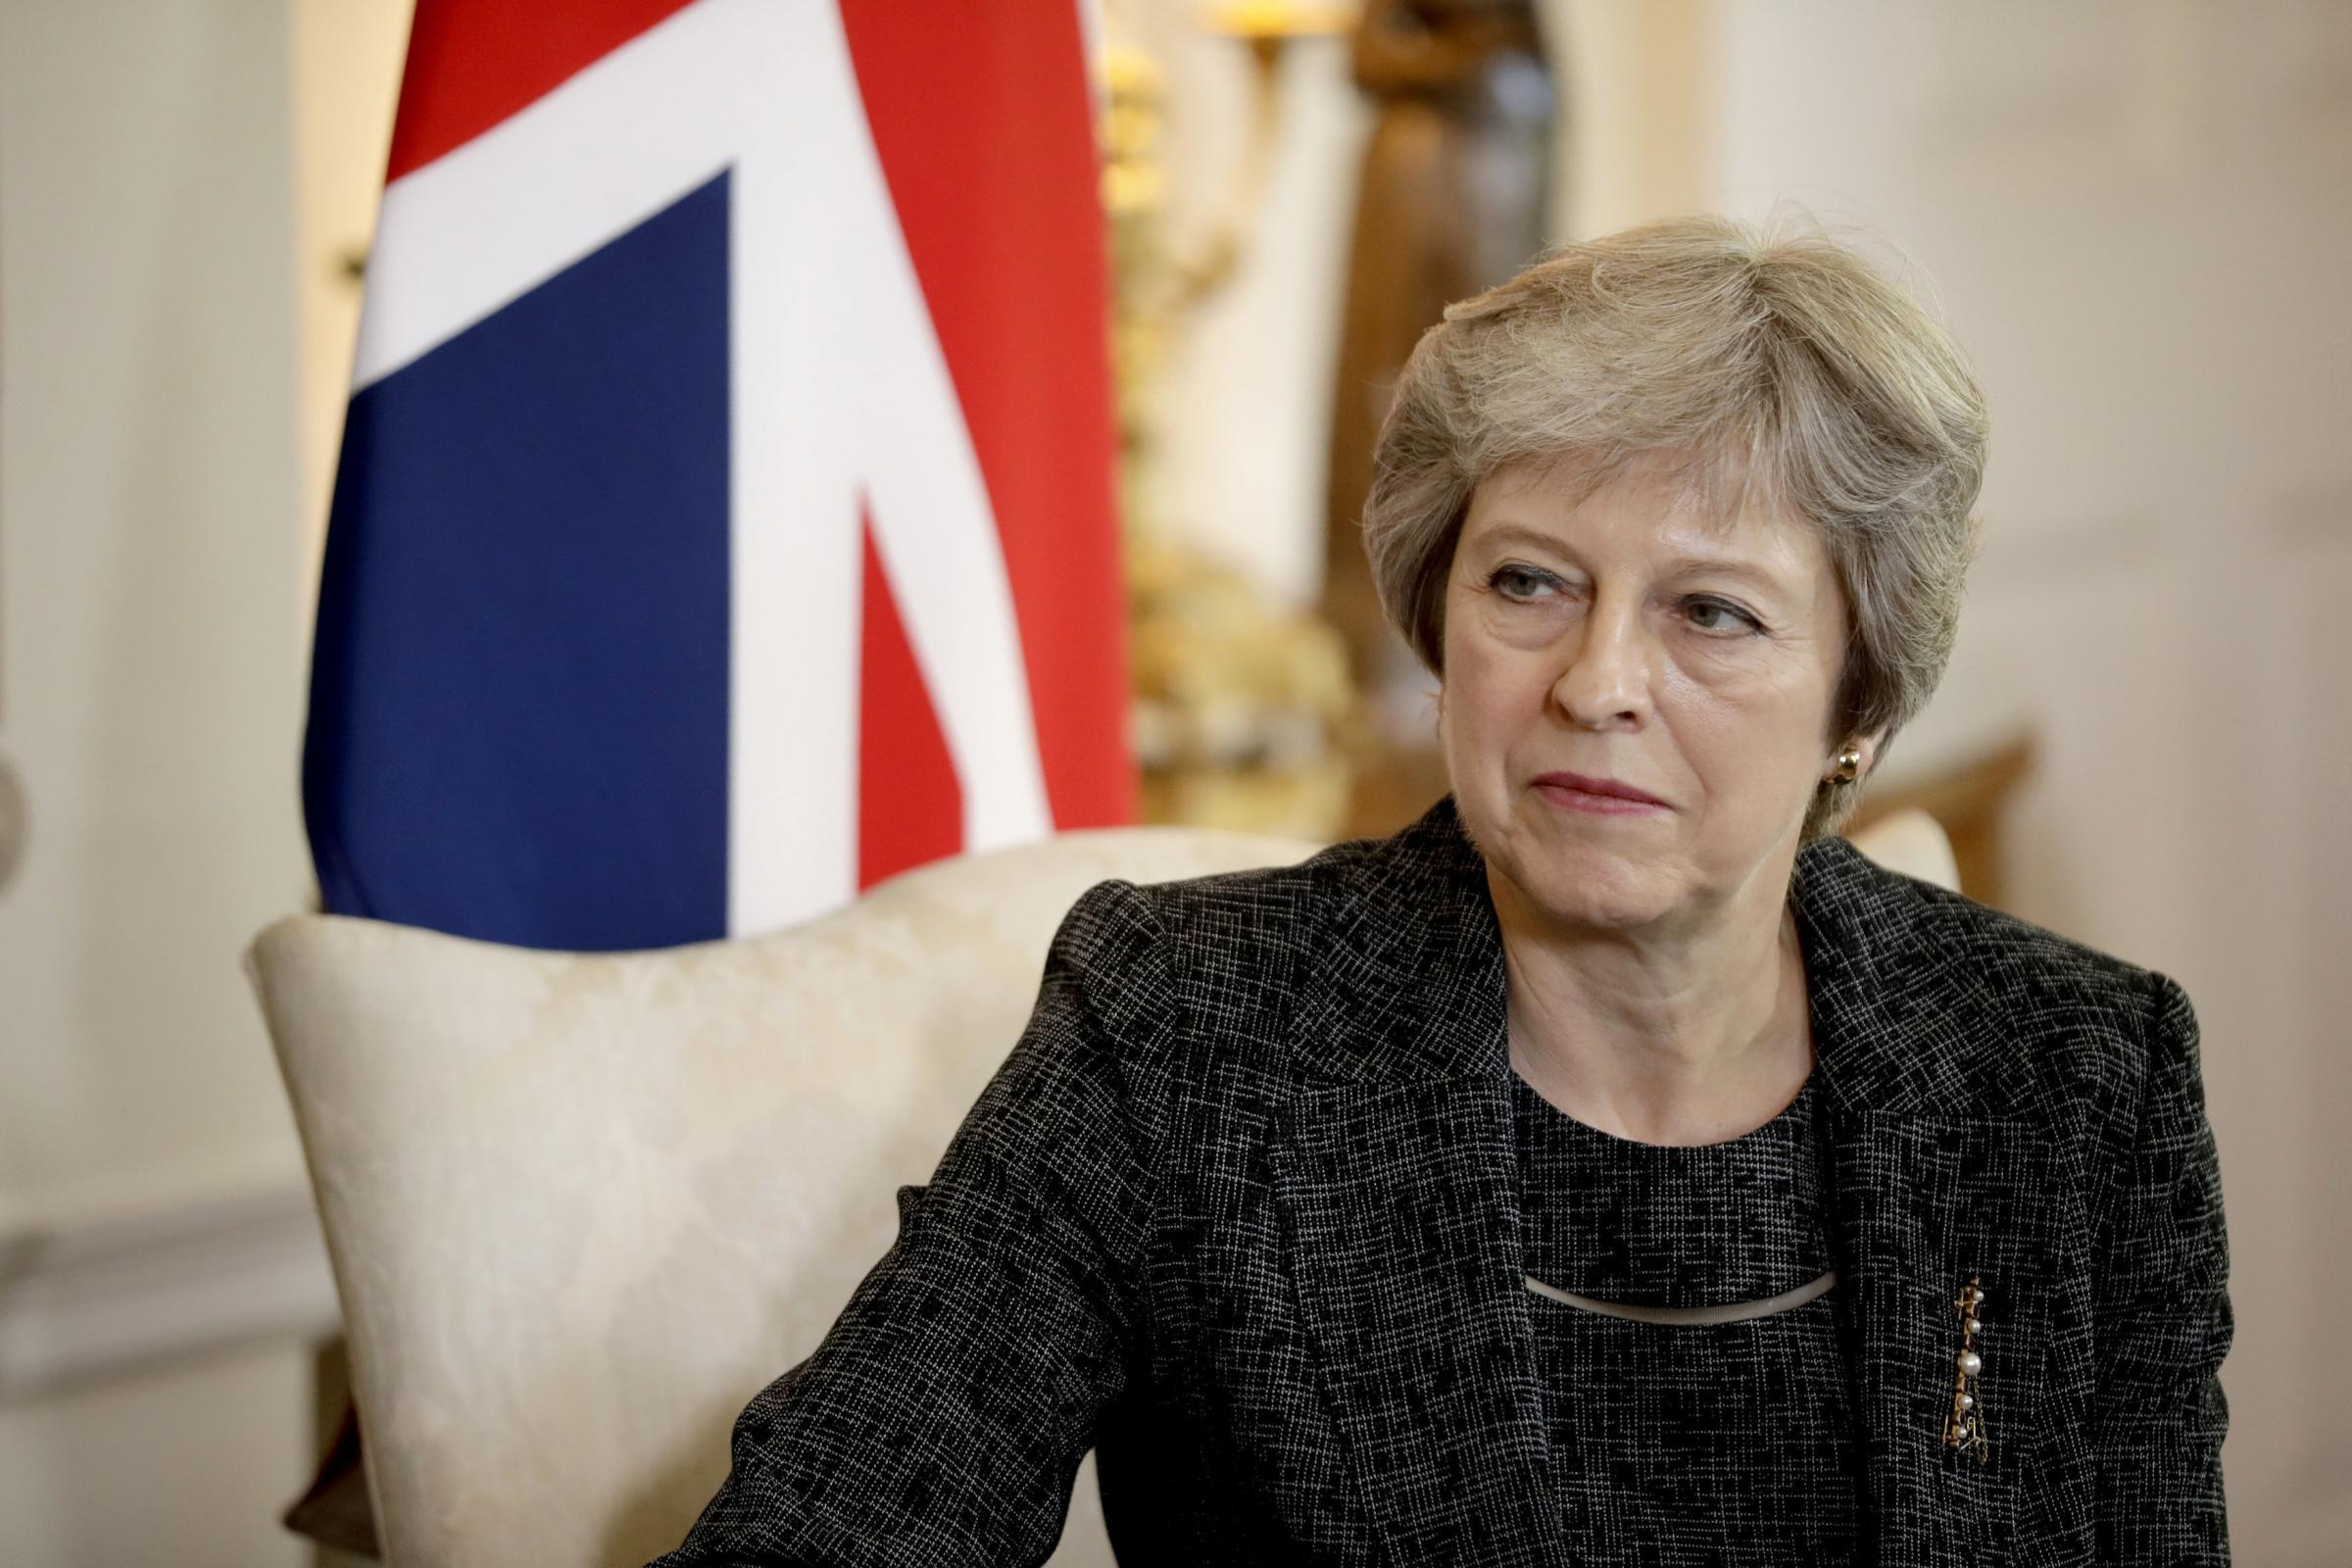 We already miss you: Key quotes from Brexit journey